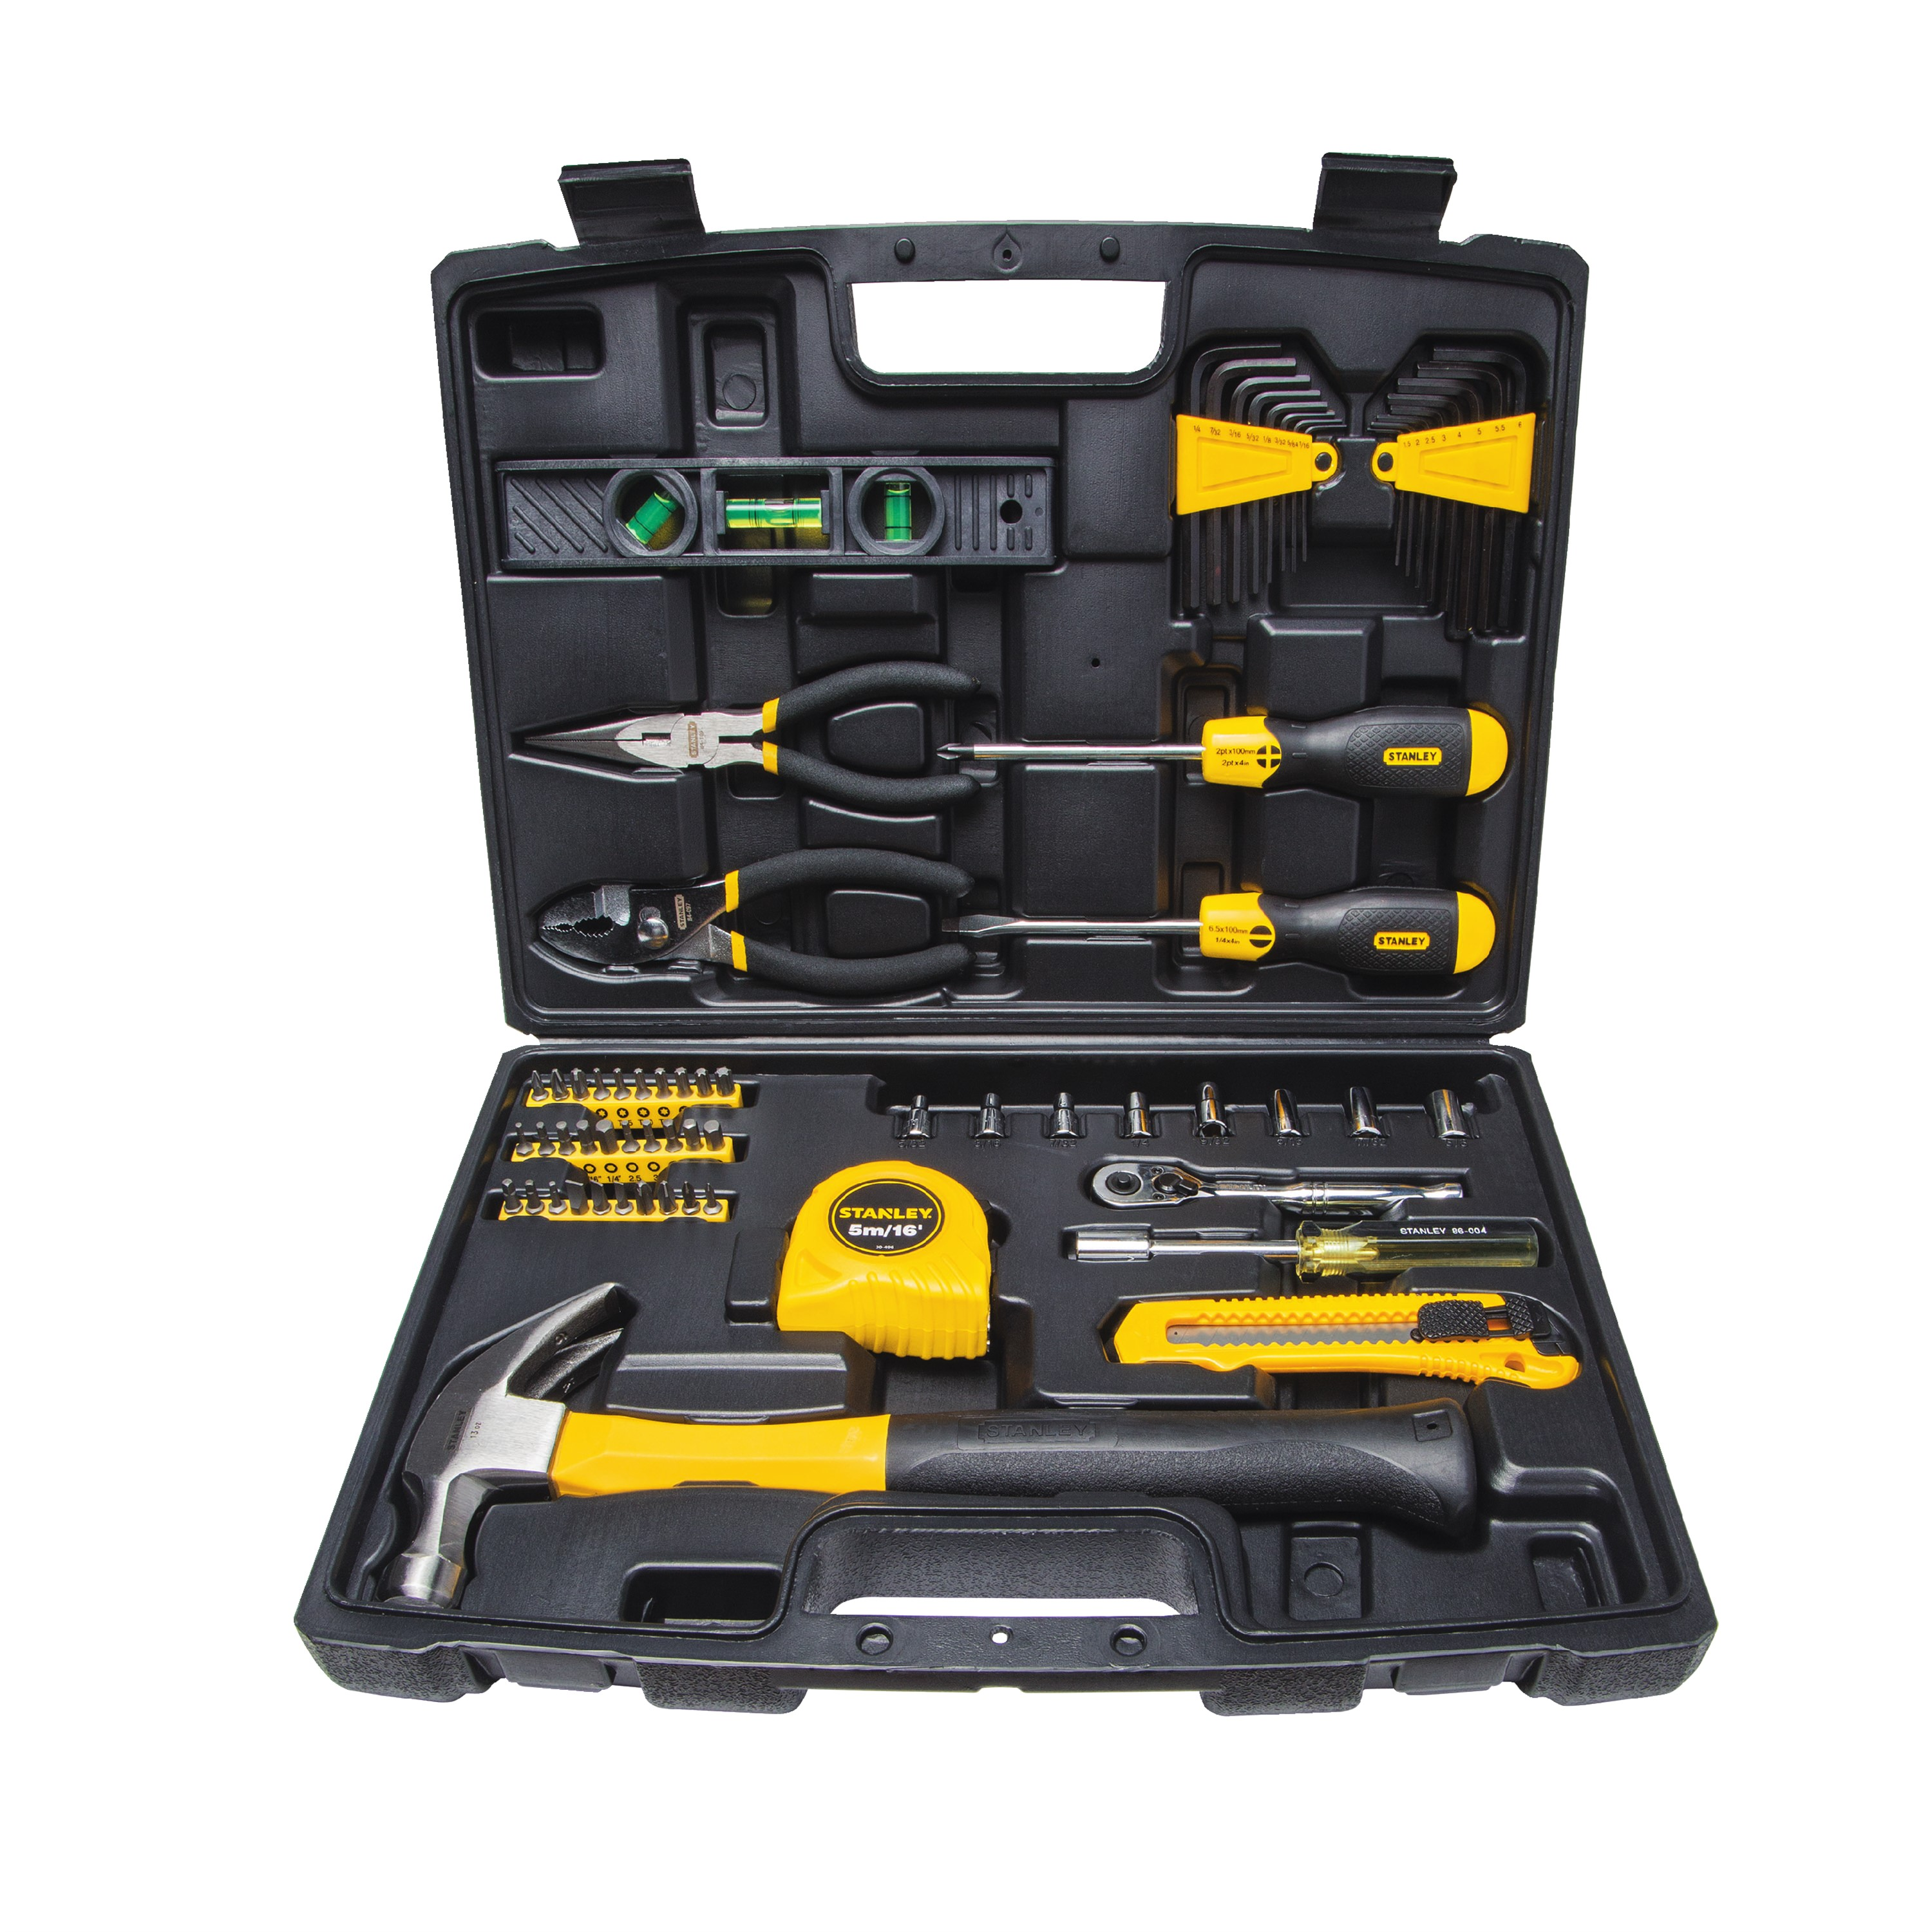 STANLEY 94-248 Homeowner's 65-Piece DIY Tool Kit